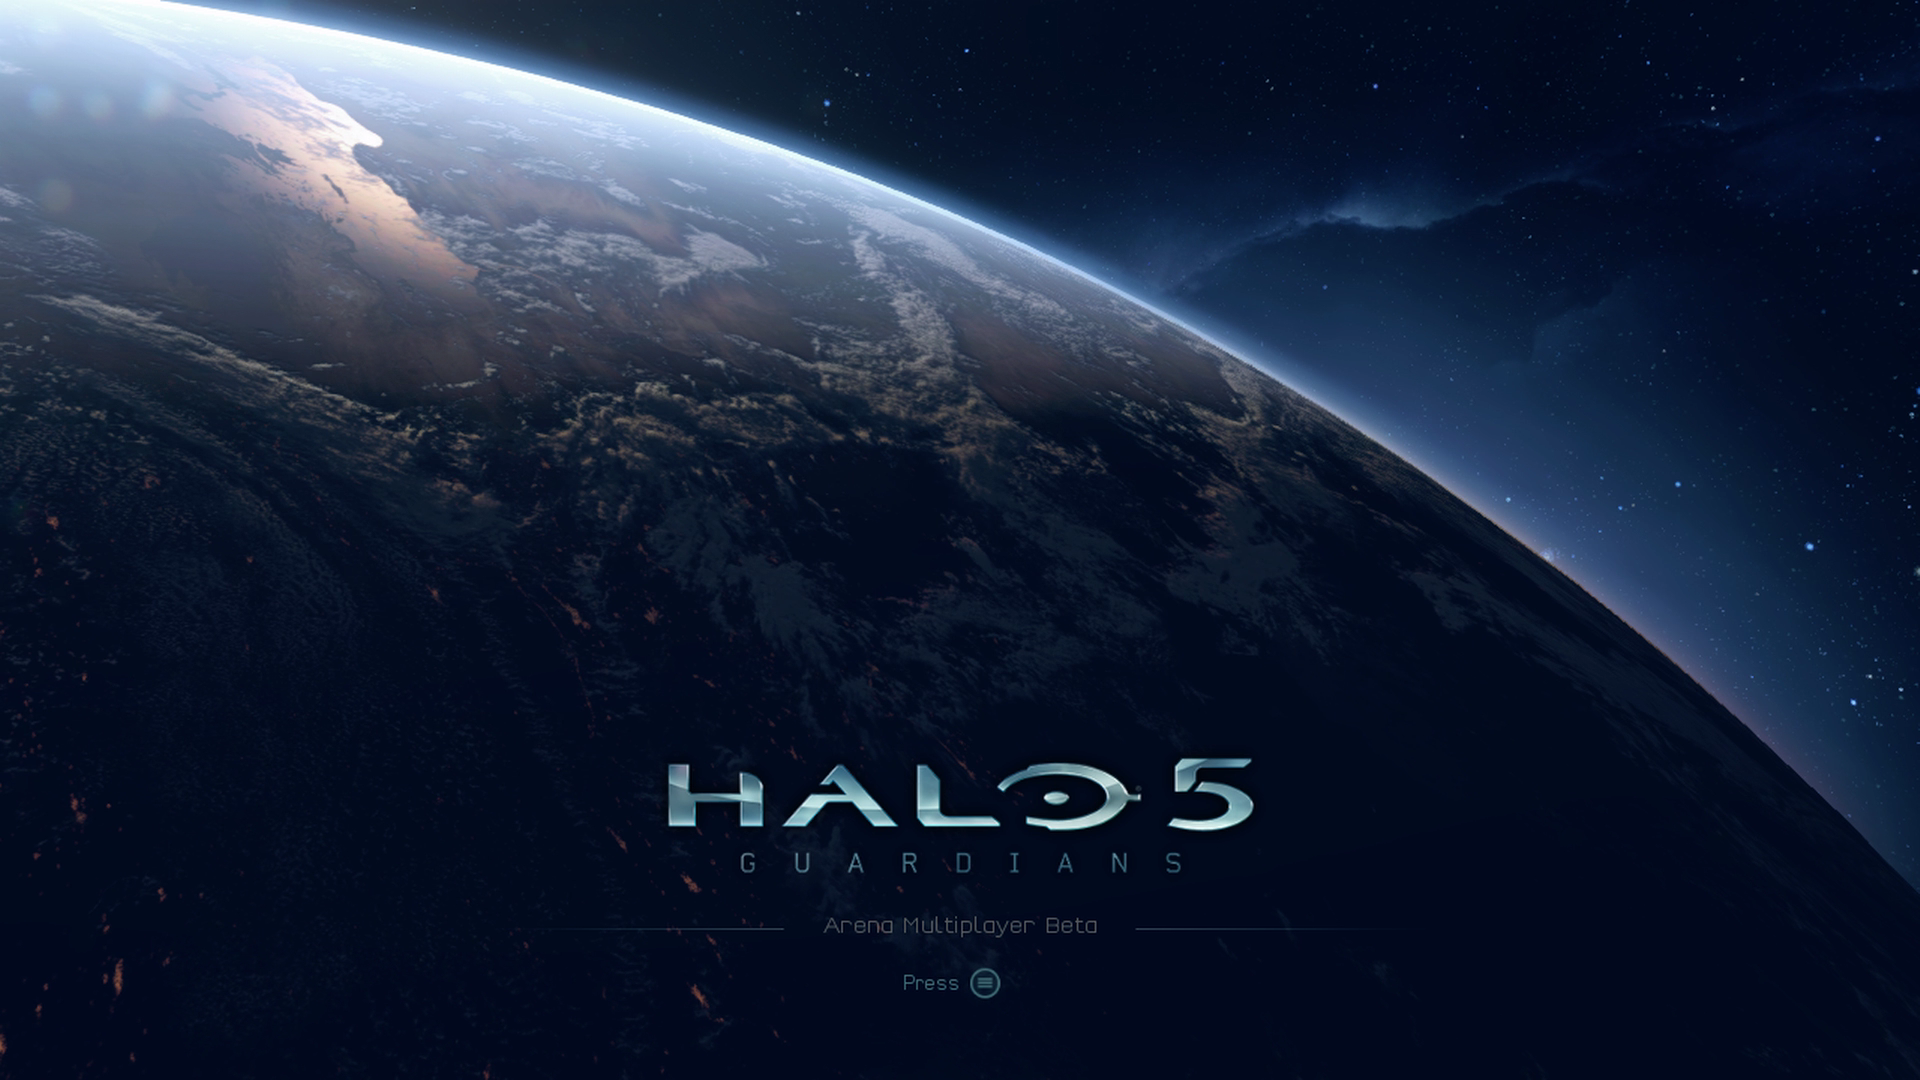 Halo 5 : Guardians wallpaper